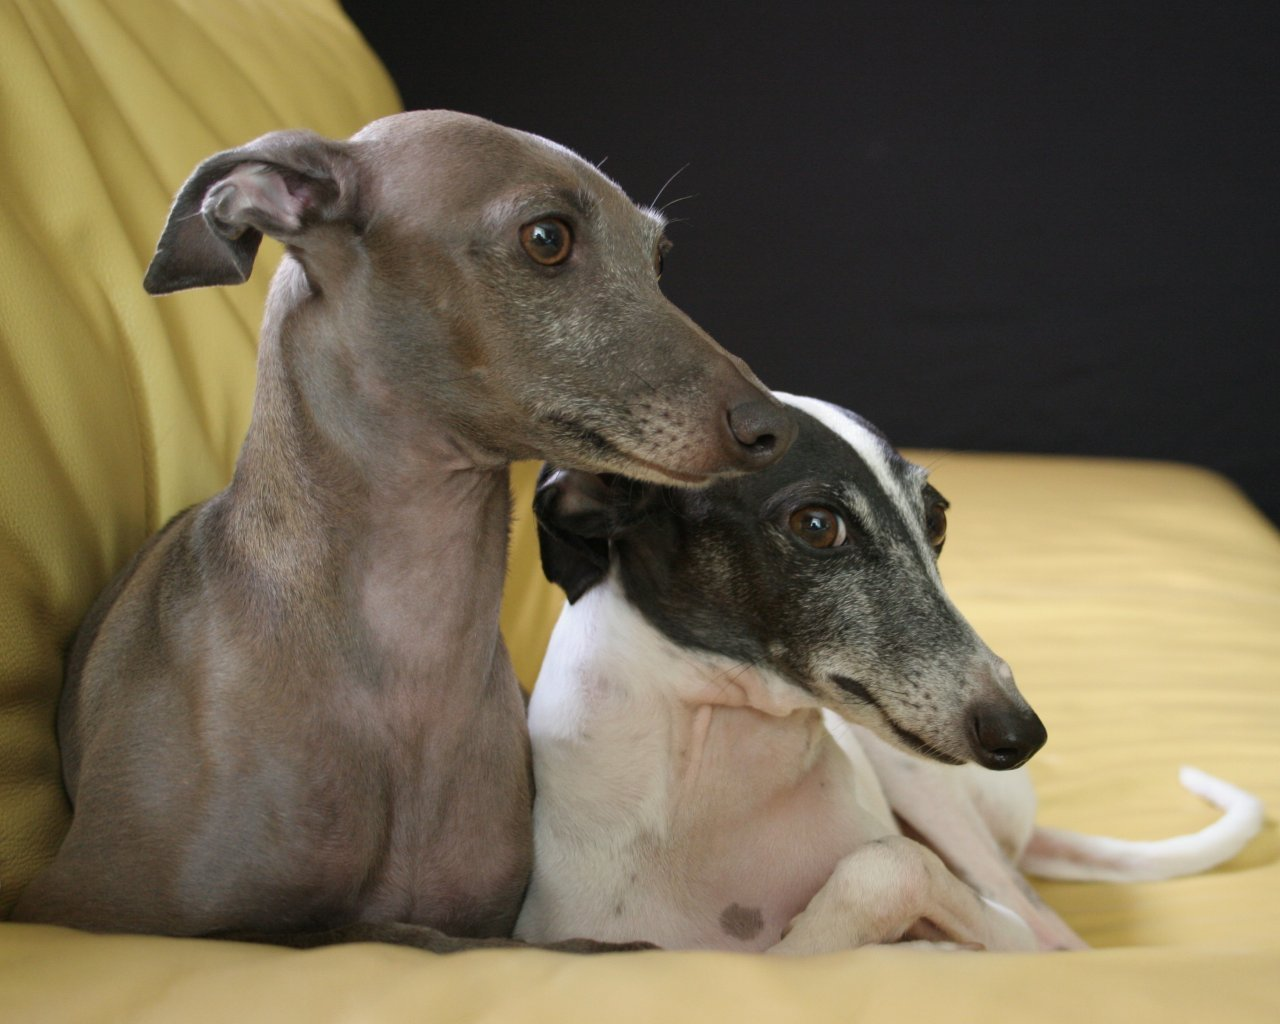 http://images2.fanpop.com/image/photos/13000000/Italian-Greyhound-dogs-13073855-1280-1024.jpg